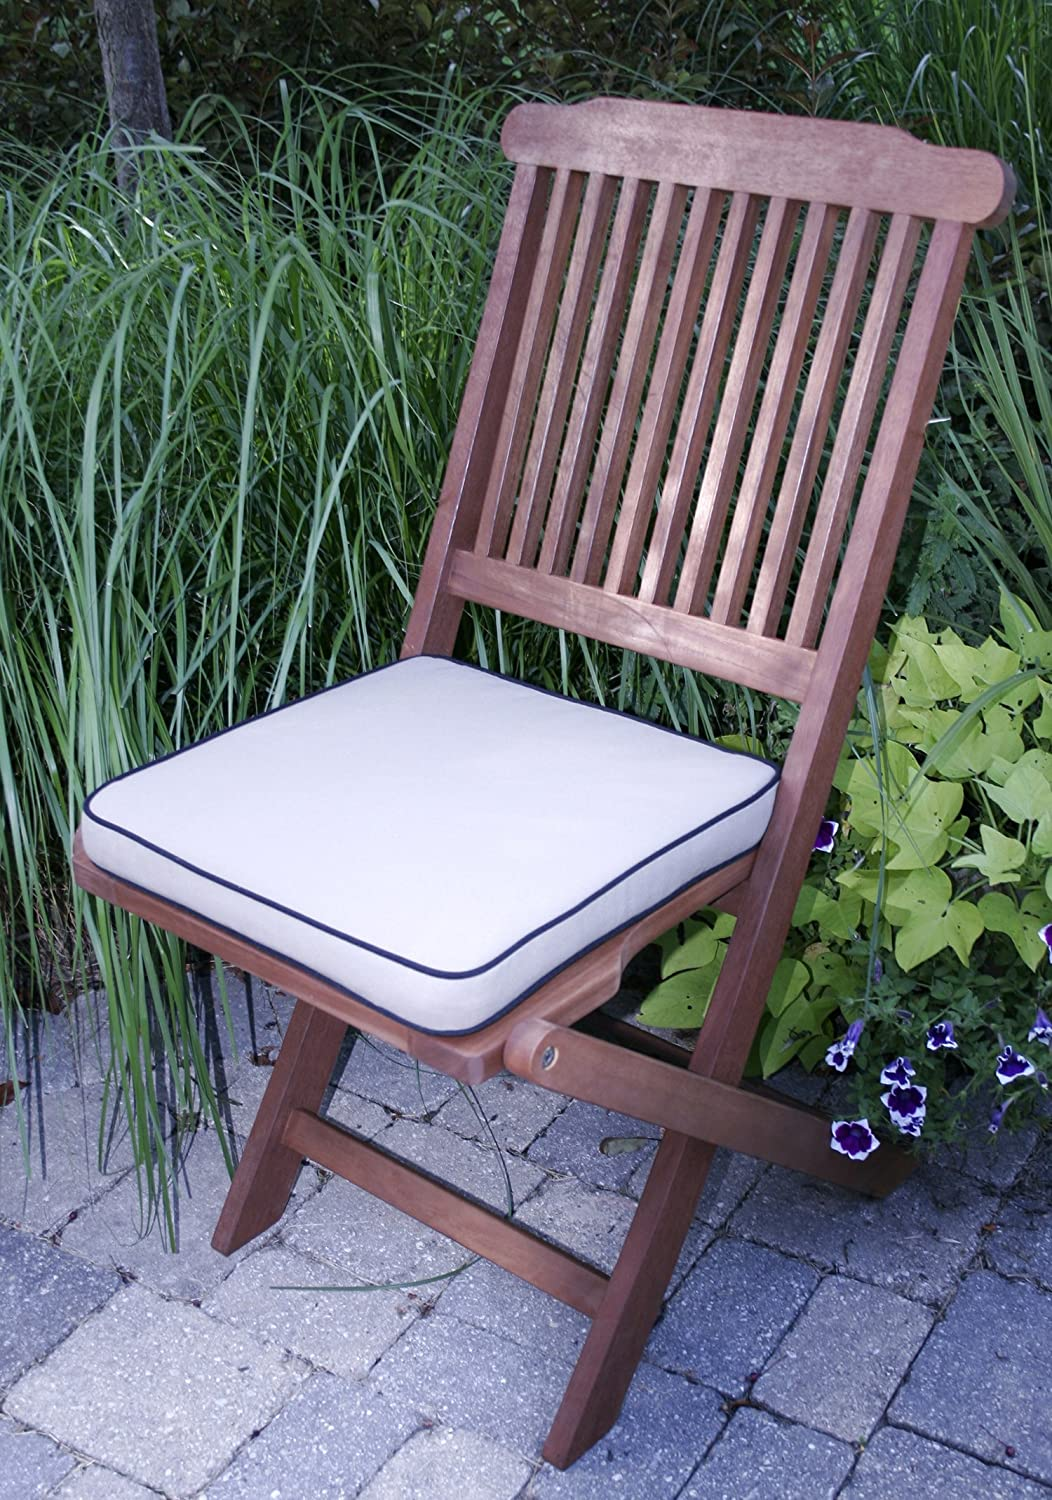 New Eucalyptus 3pc Table Chairs Bistro Deck Patio Porch Outdoor Furniture Set Ebay